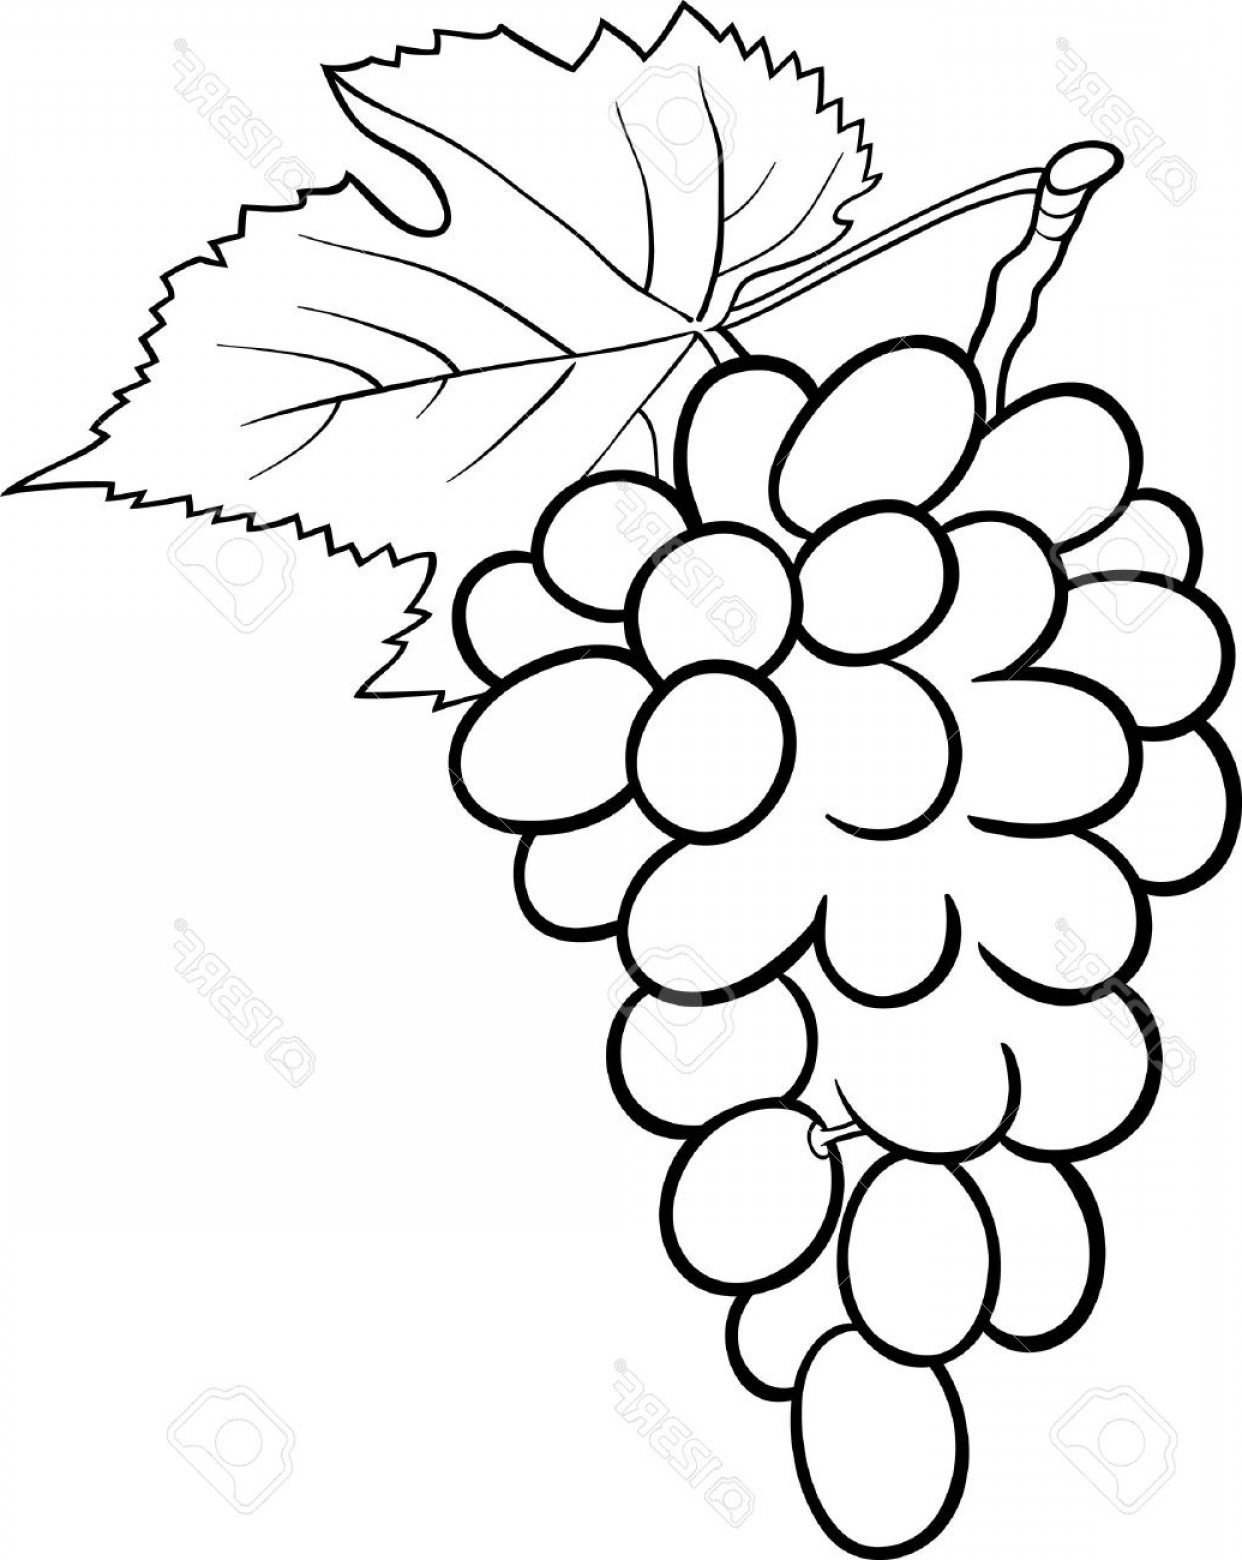 Grapes Clip Art Vector: Photoblack And White Cartoon Illustration Of Bunch Of Grapes Or Grapevine Fruit Food Object For Coloring